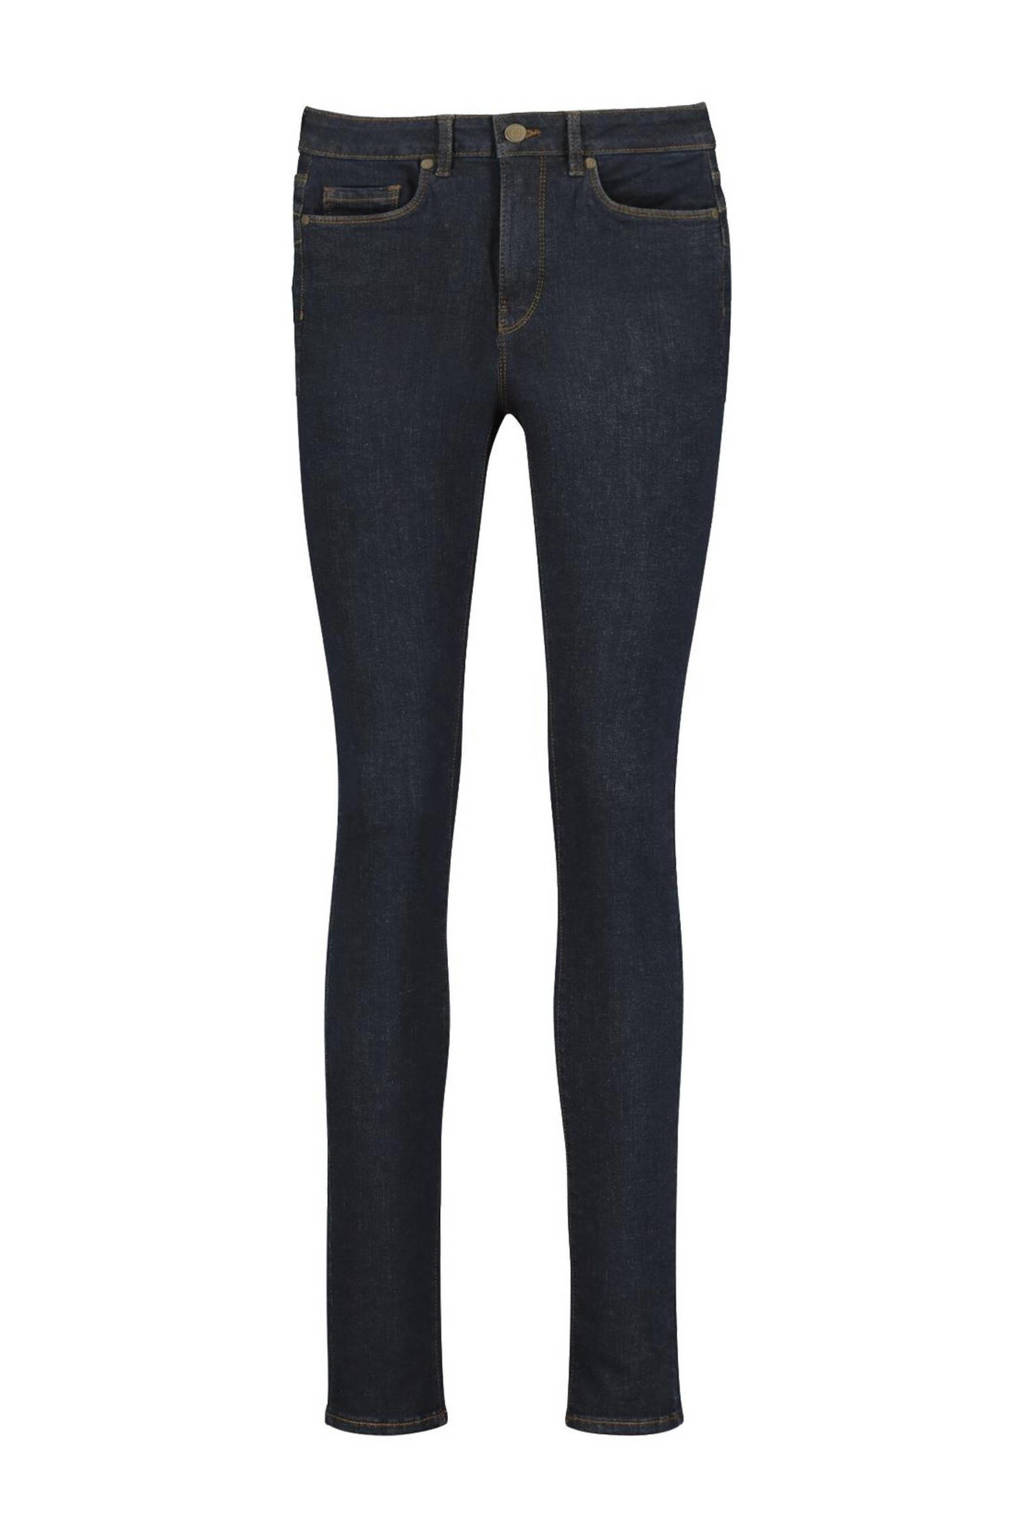 HEMA push-up skinny jeans dark denim, Dark denim